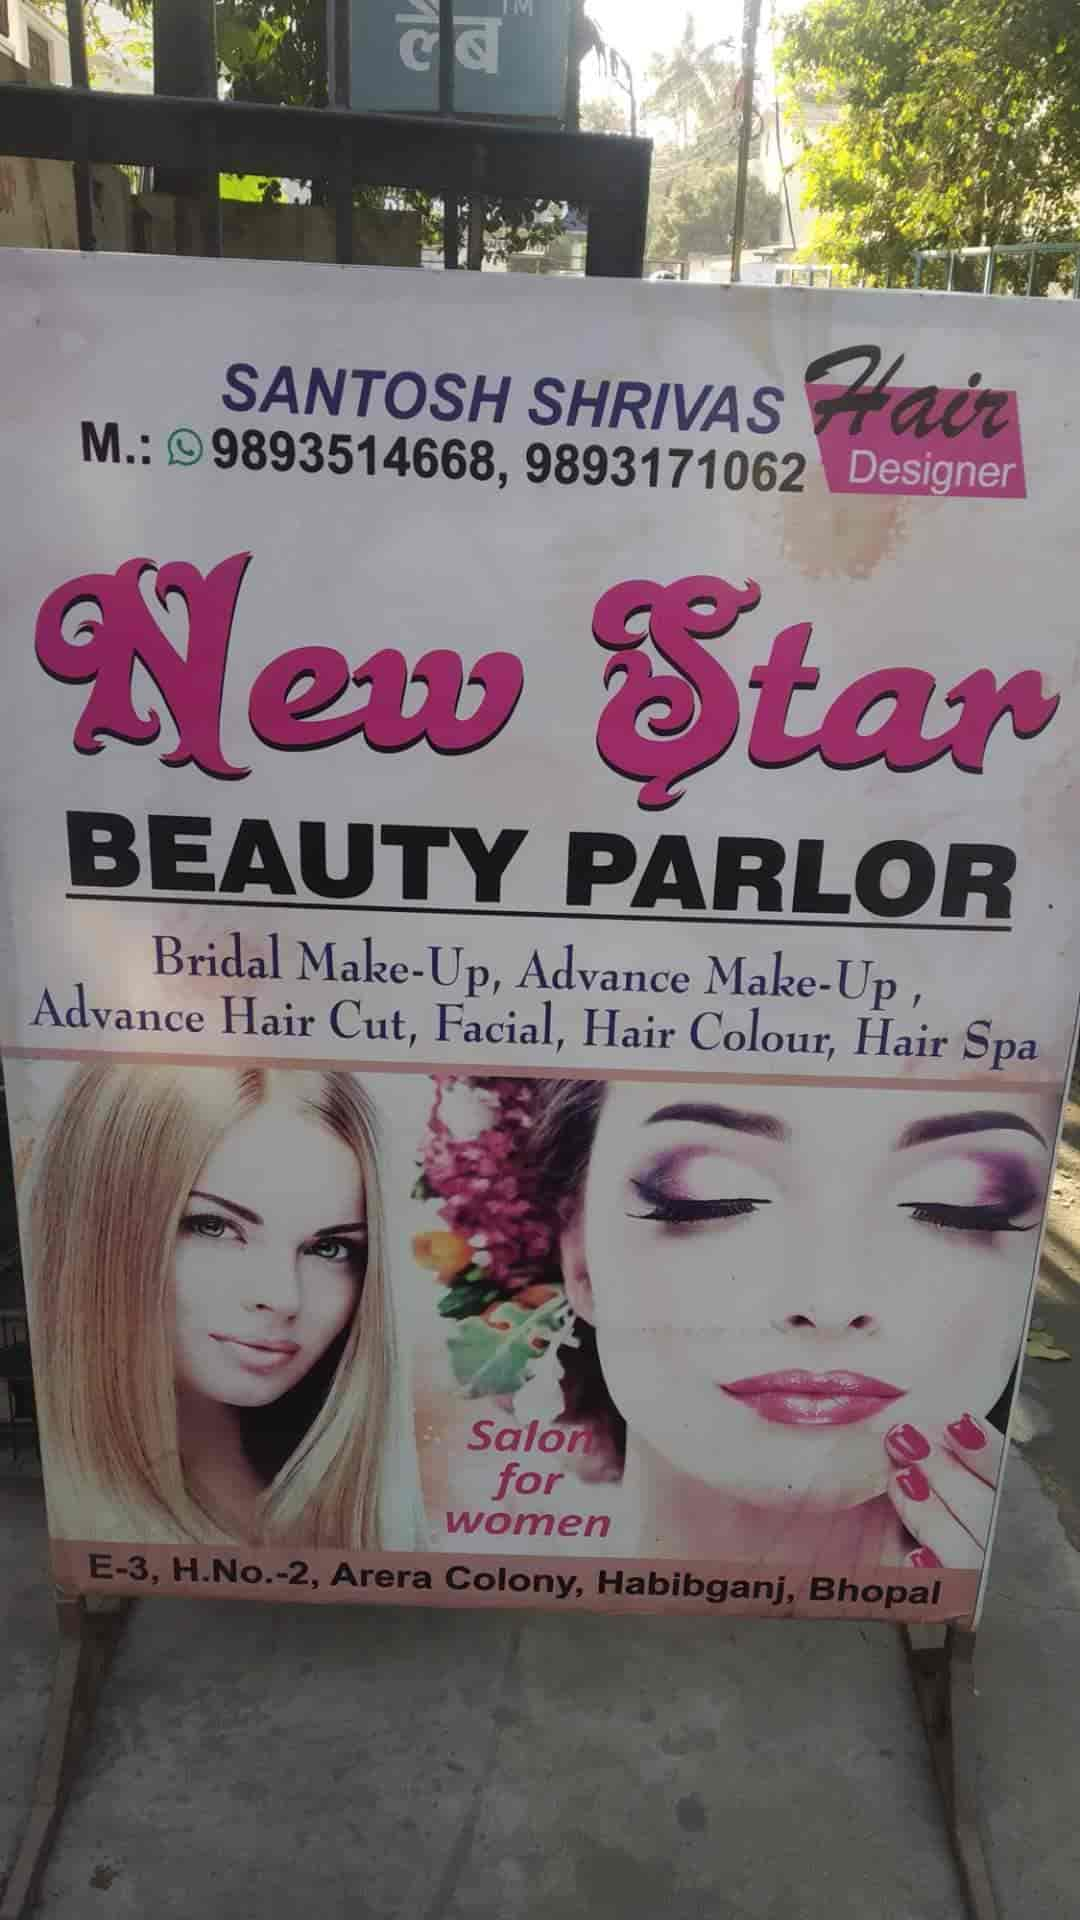 New Star Beauty Parlour, Arera Colony - Beauty Parlours in Bhopal